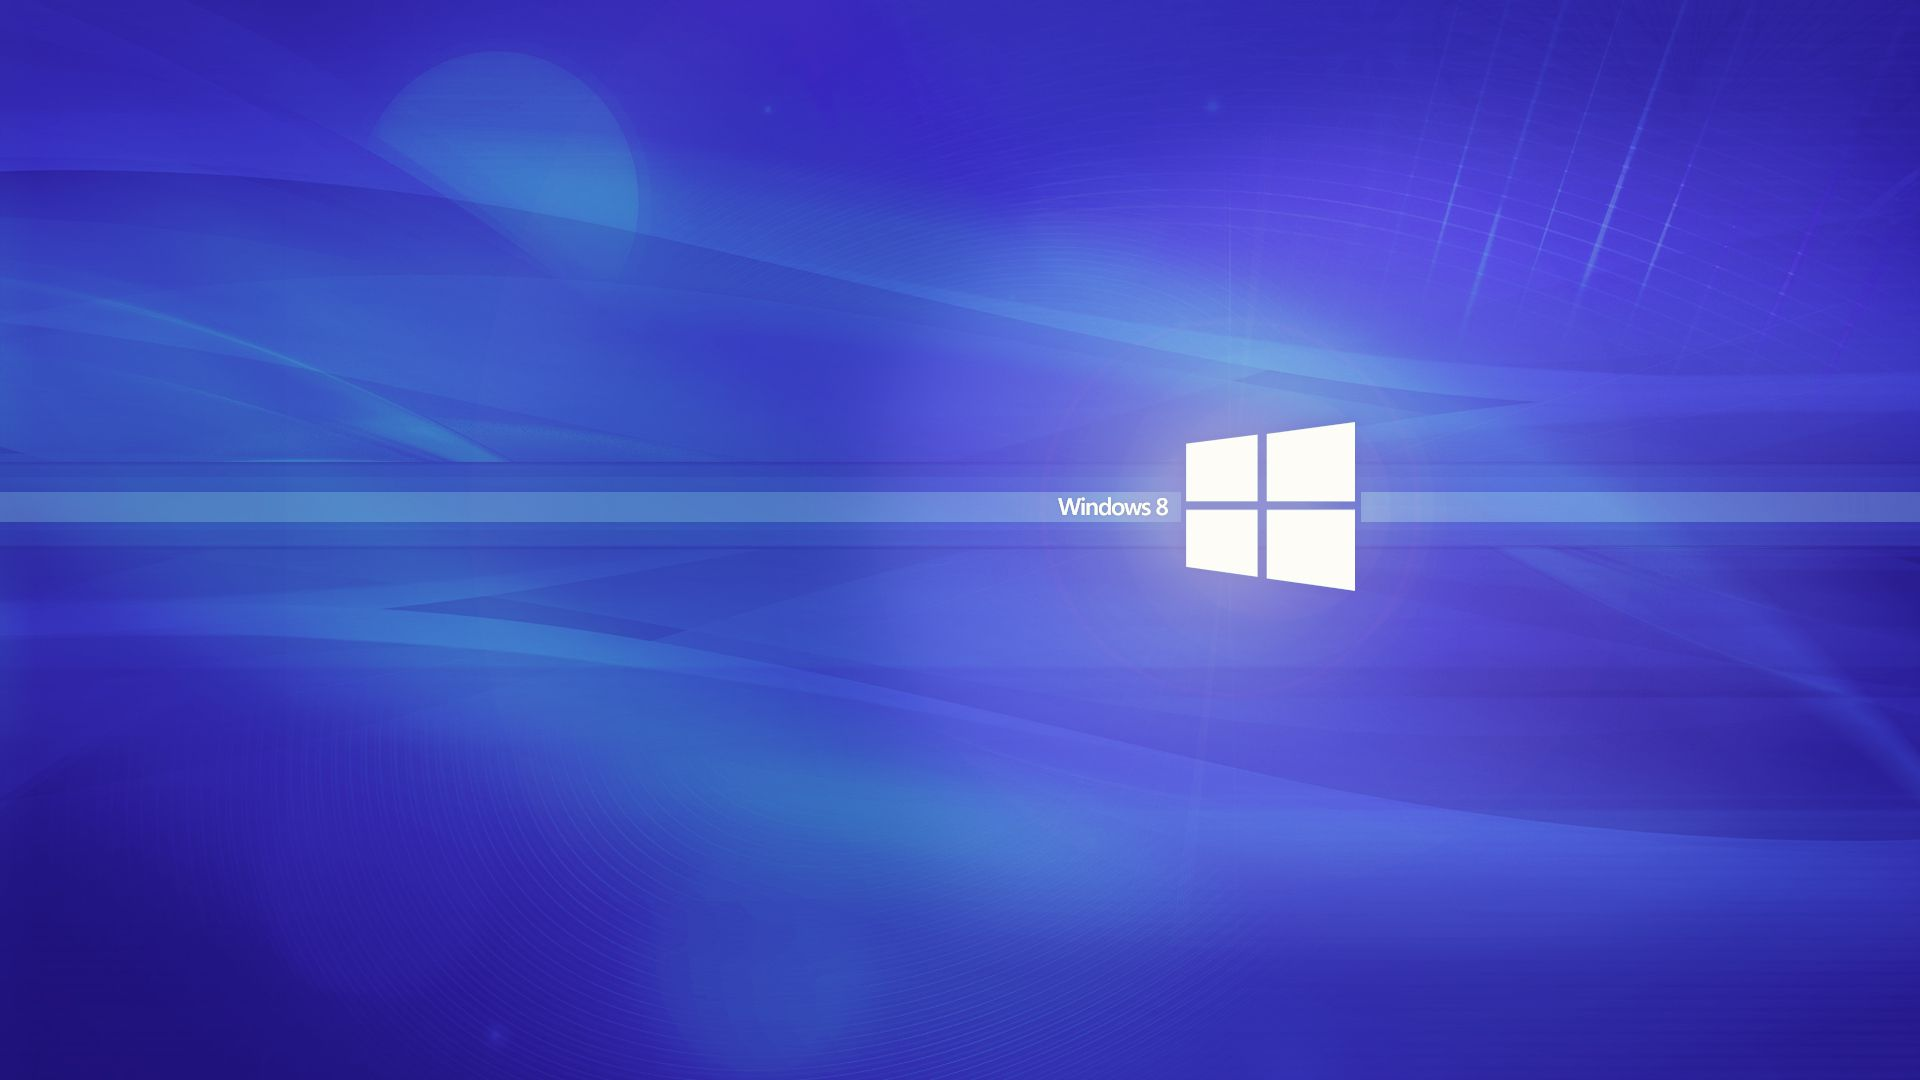 1920x1080 Windows 8 Full HD Wallpaper and Background Image   1920x1080   ID:637155